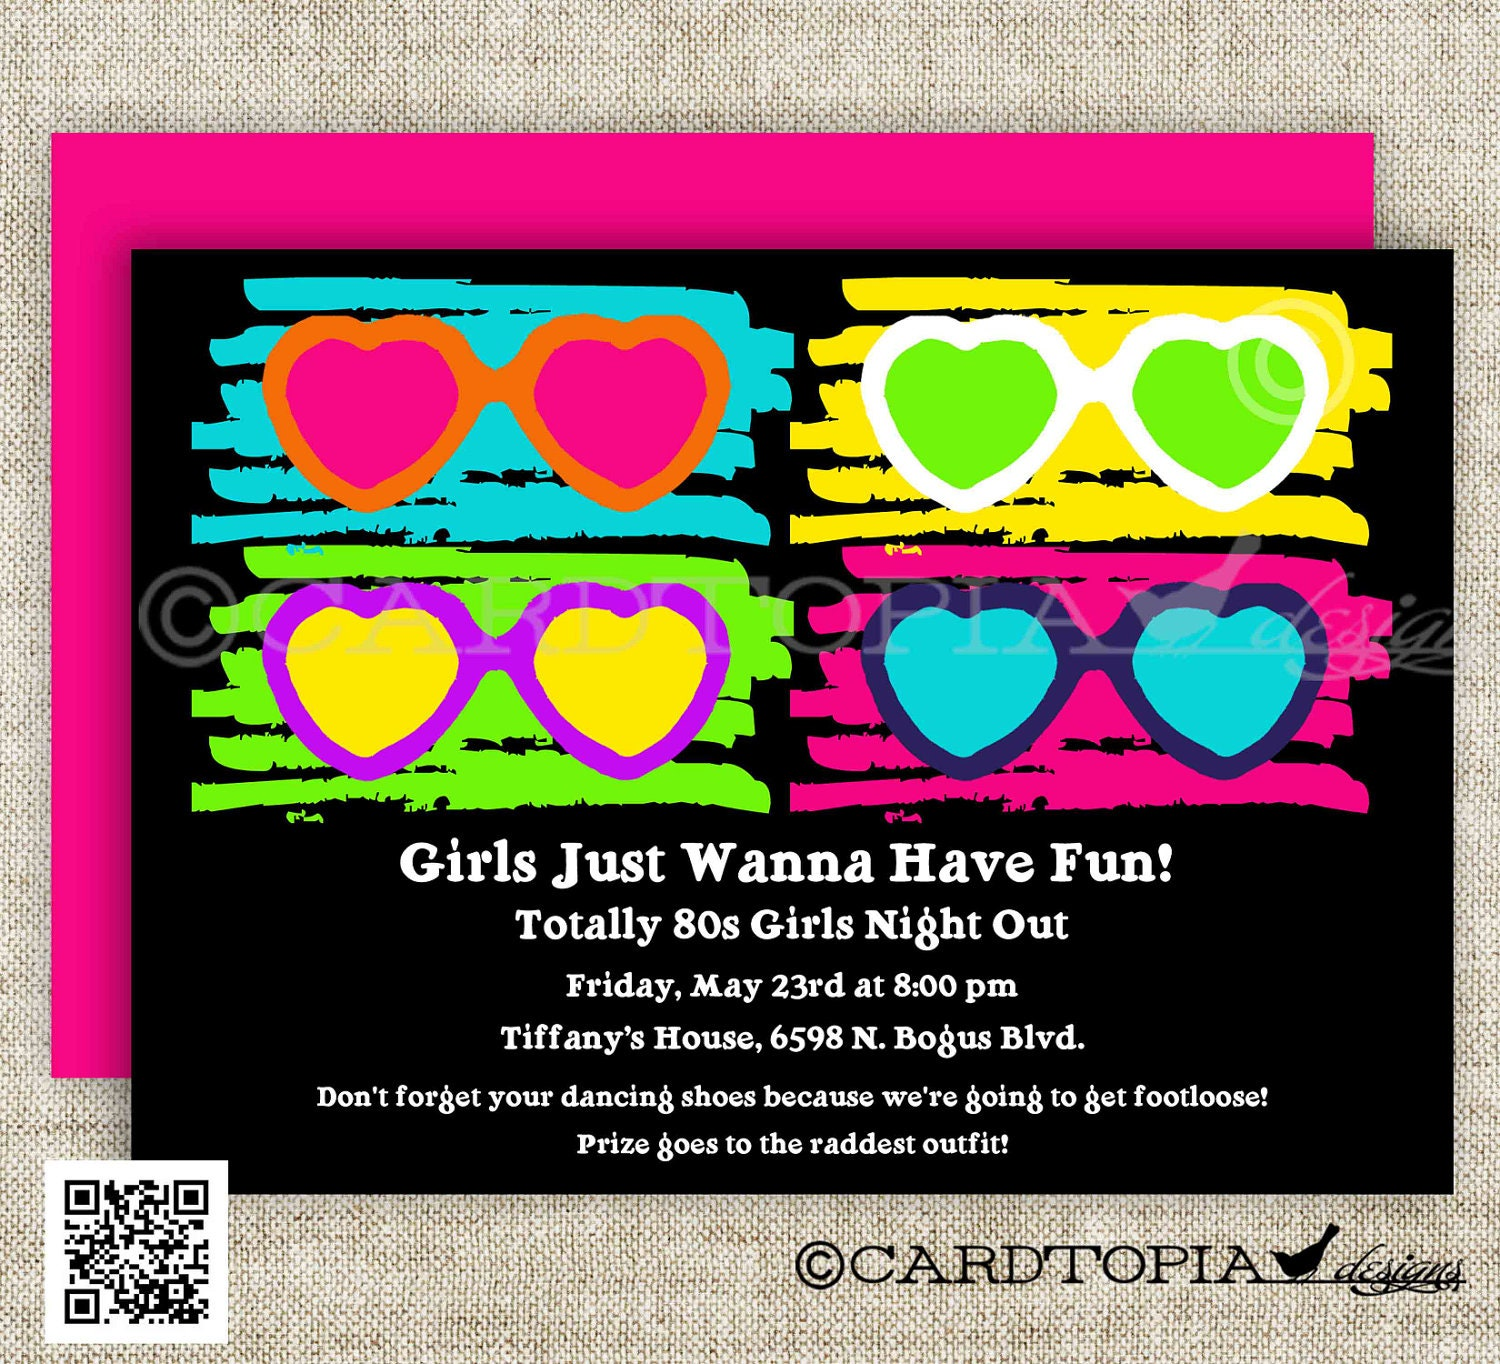 s birthday party invitations totally s party s baby, Party invitations